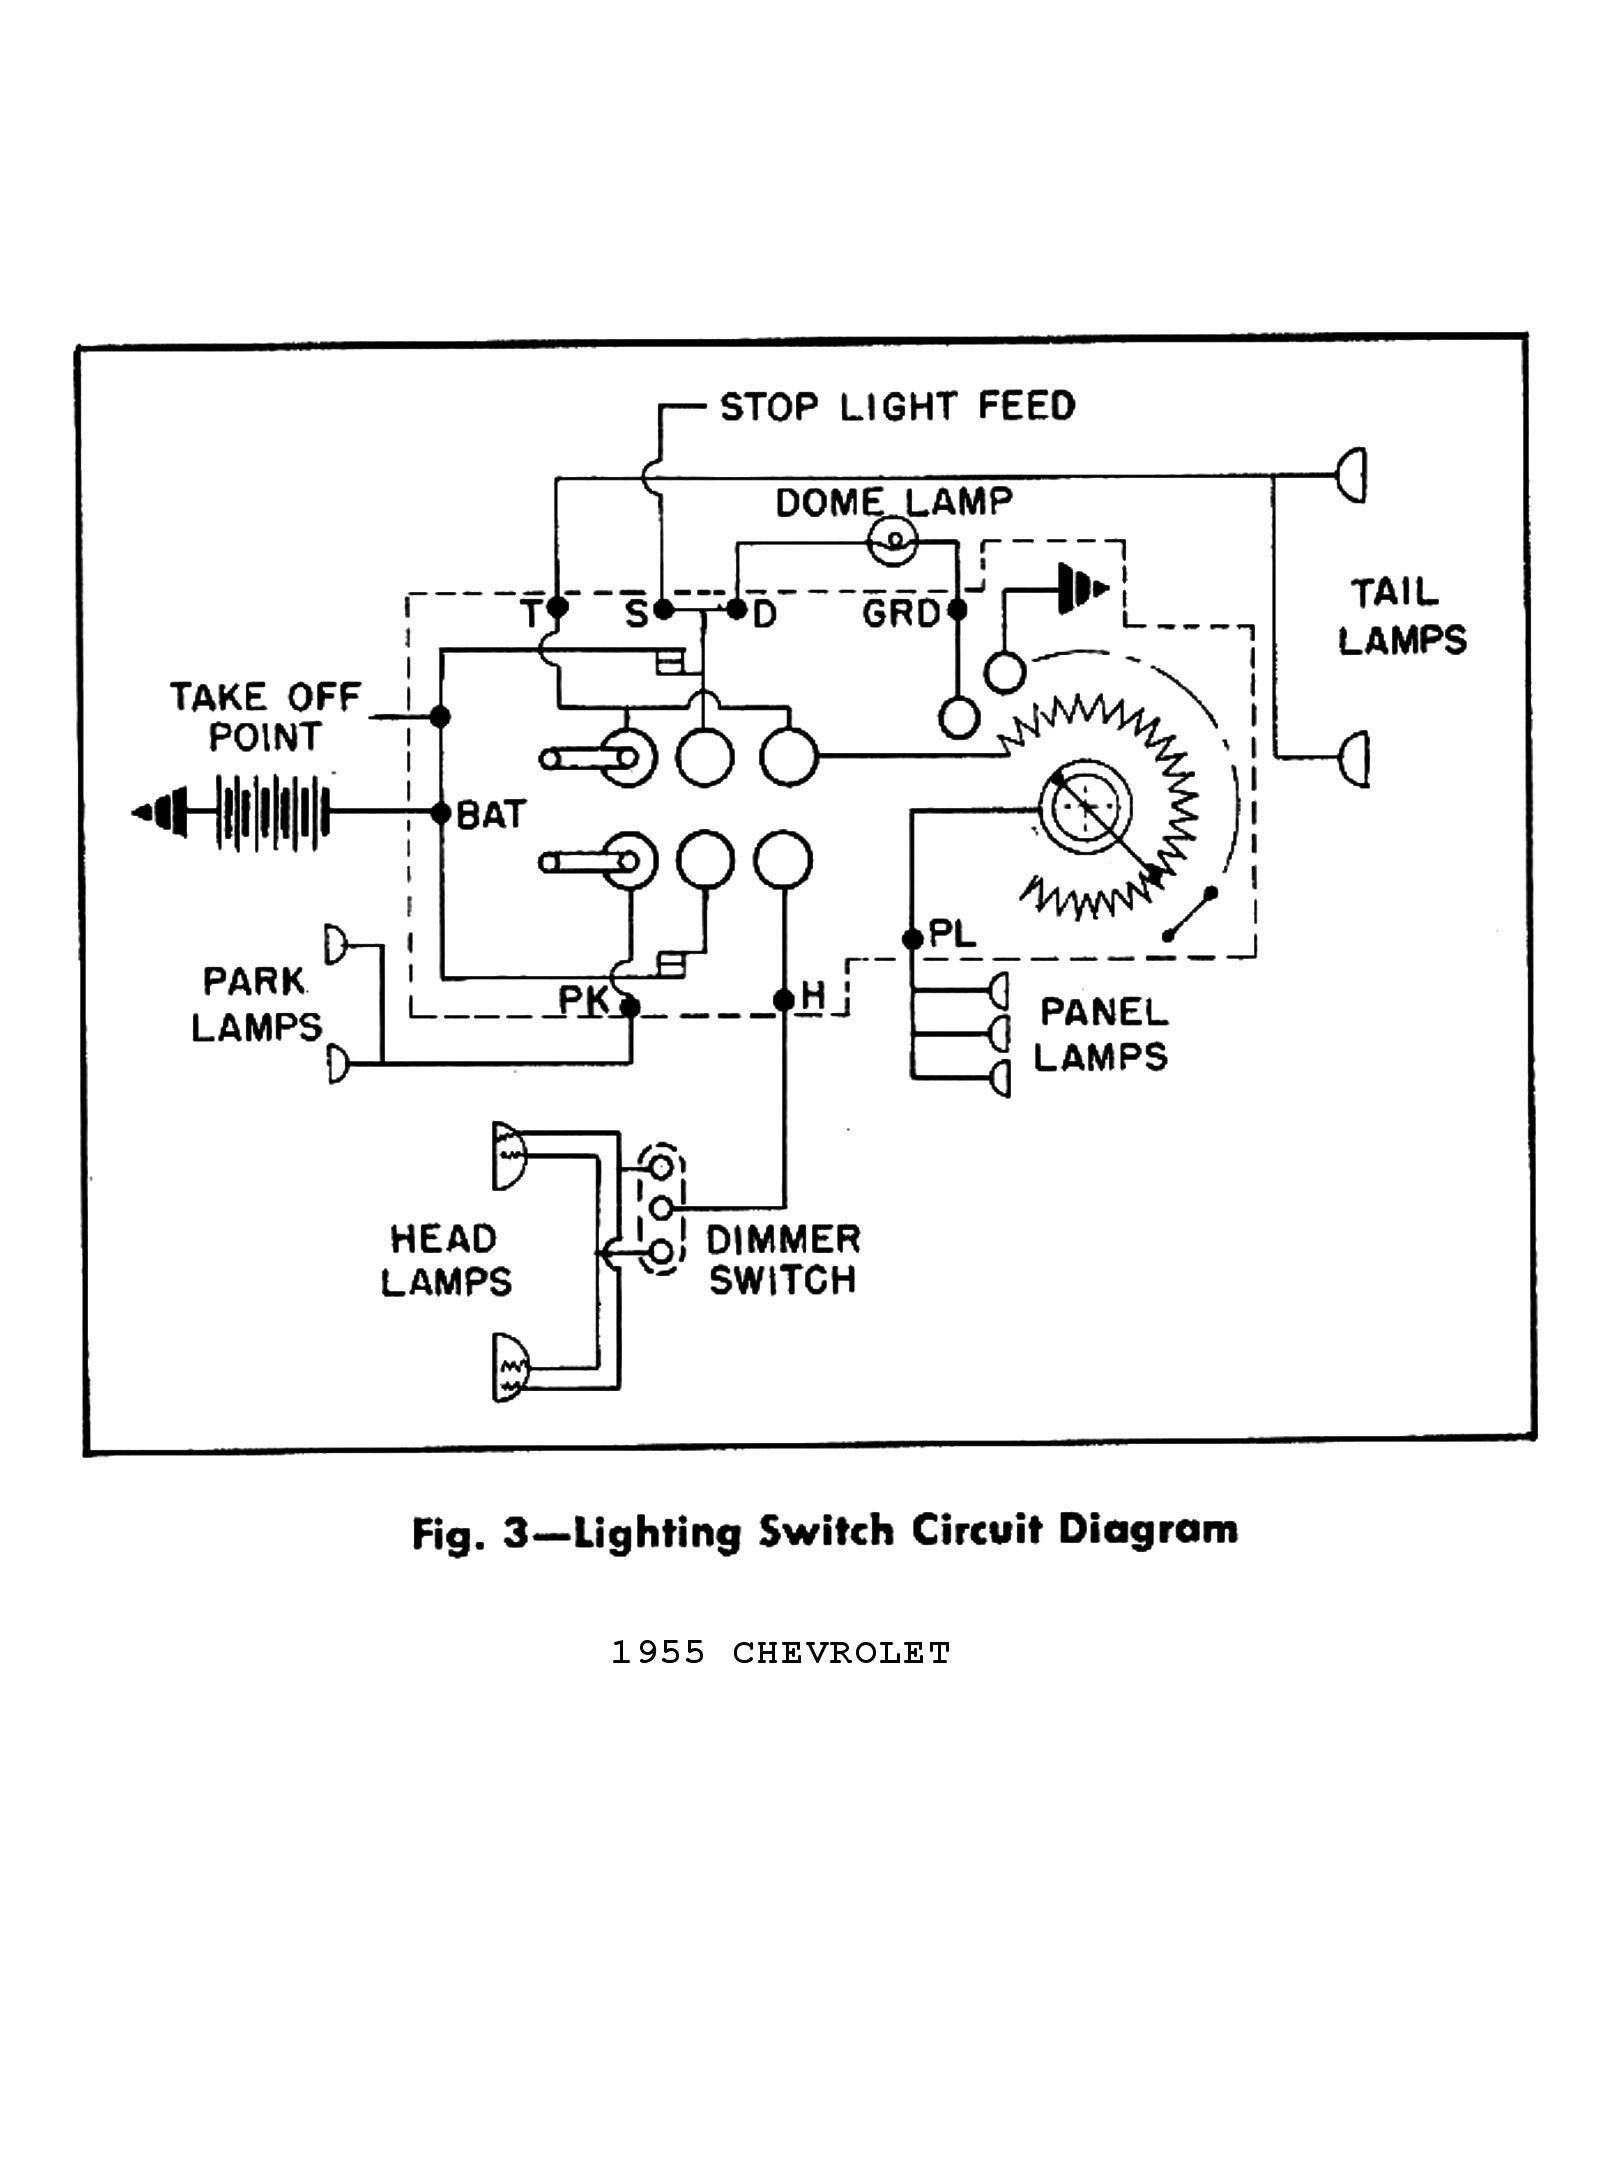 Chevrolet Ignition Switch Wiring Diagram | Wiring Diagram - Gm Ignition Switch Wiring Diagram